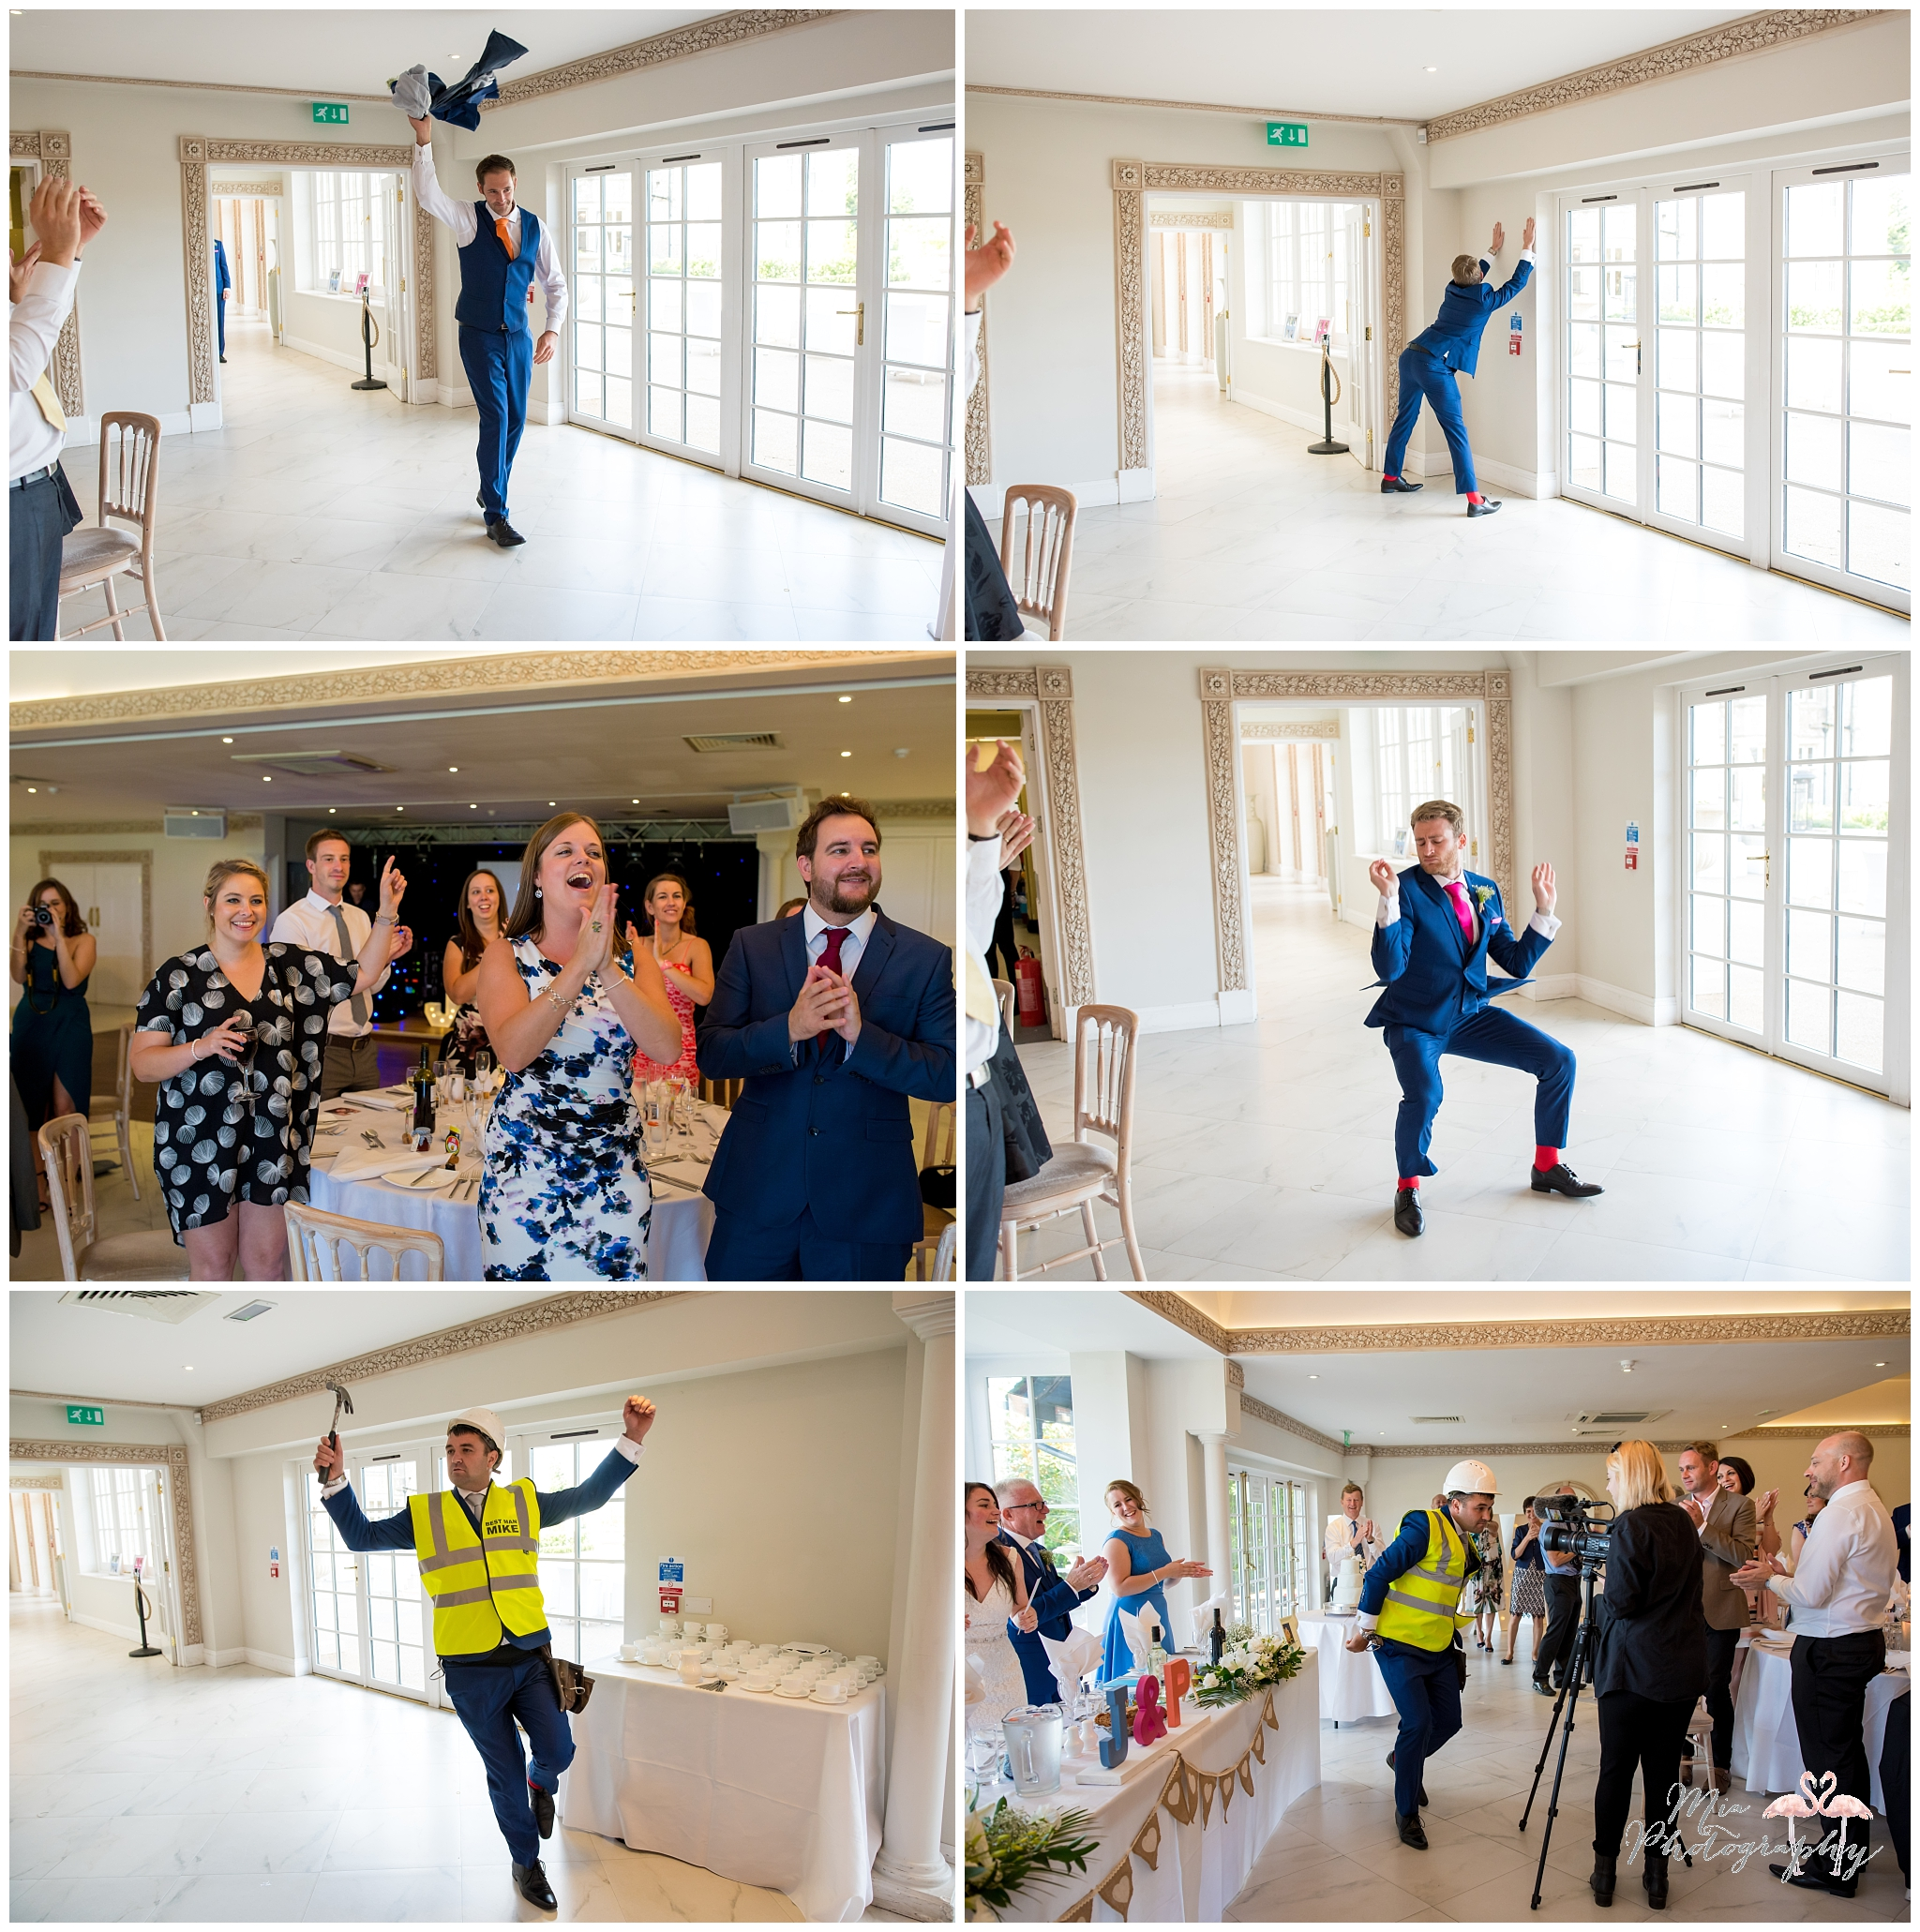 Flash mob wedding